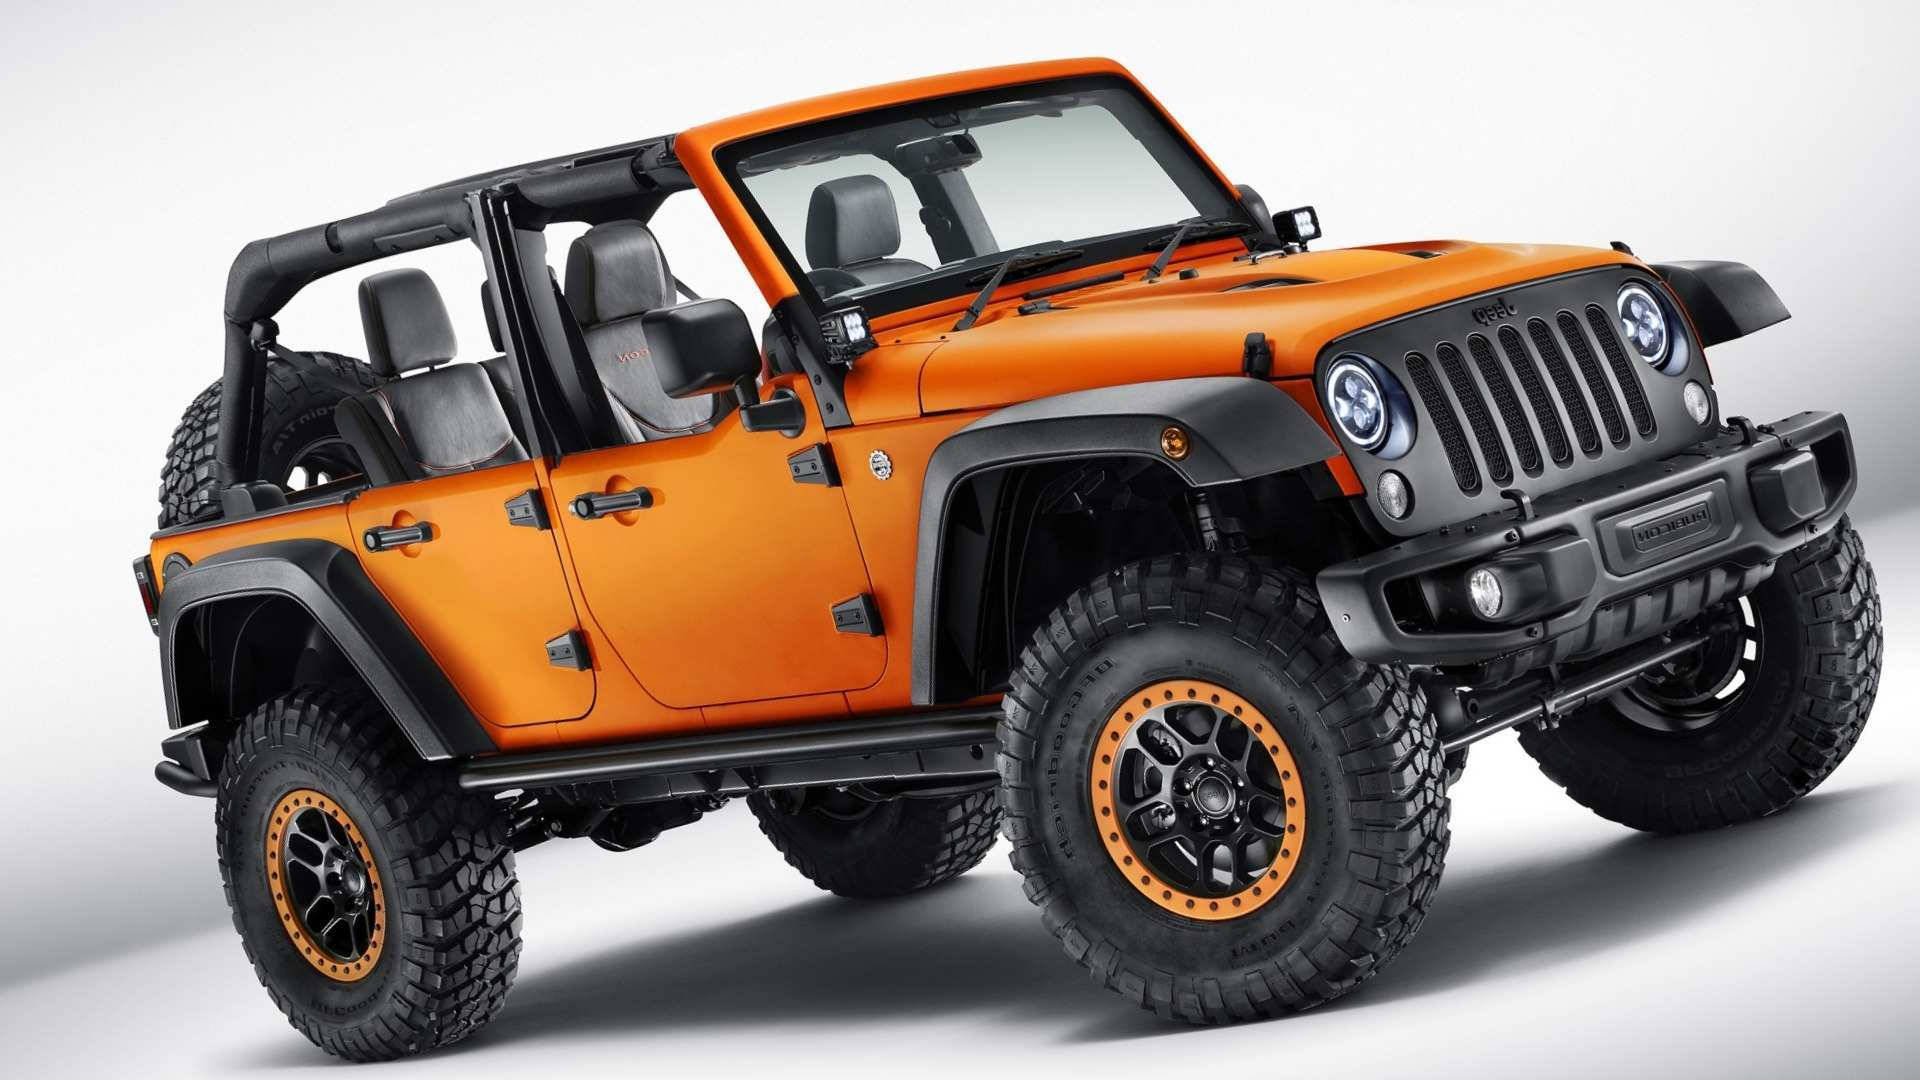 90 All New Jeep Wrangler 2020 Colors Redesign by Jeep Wrangler 2020 Colors